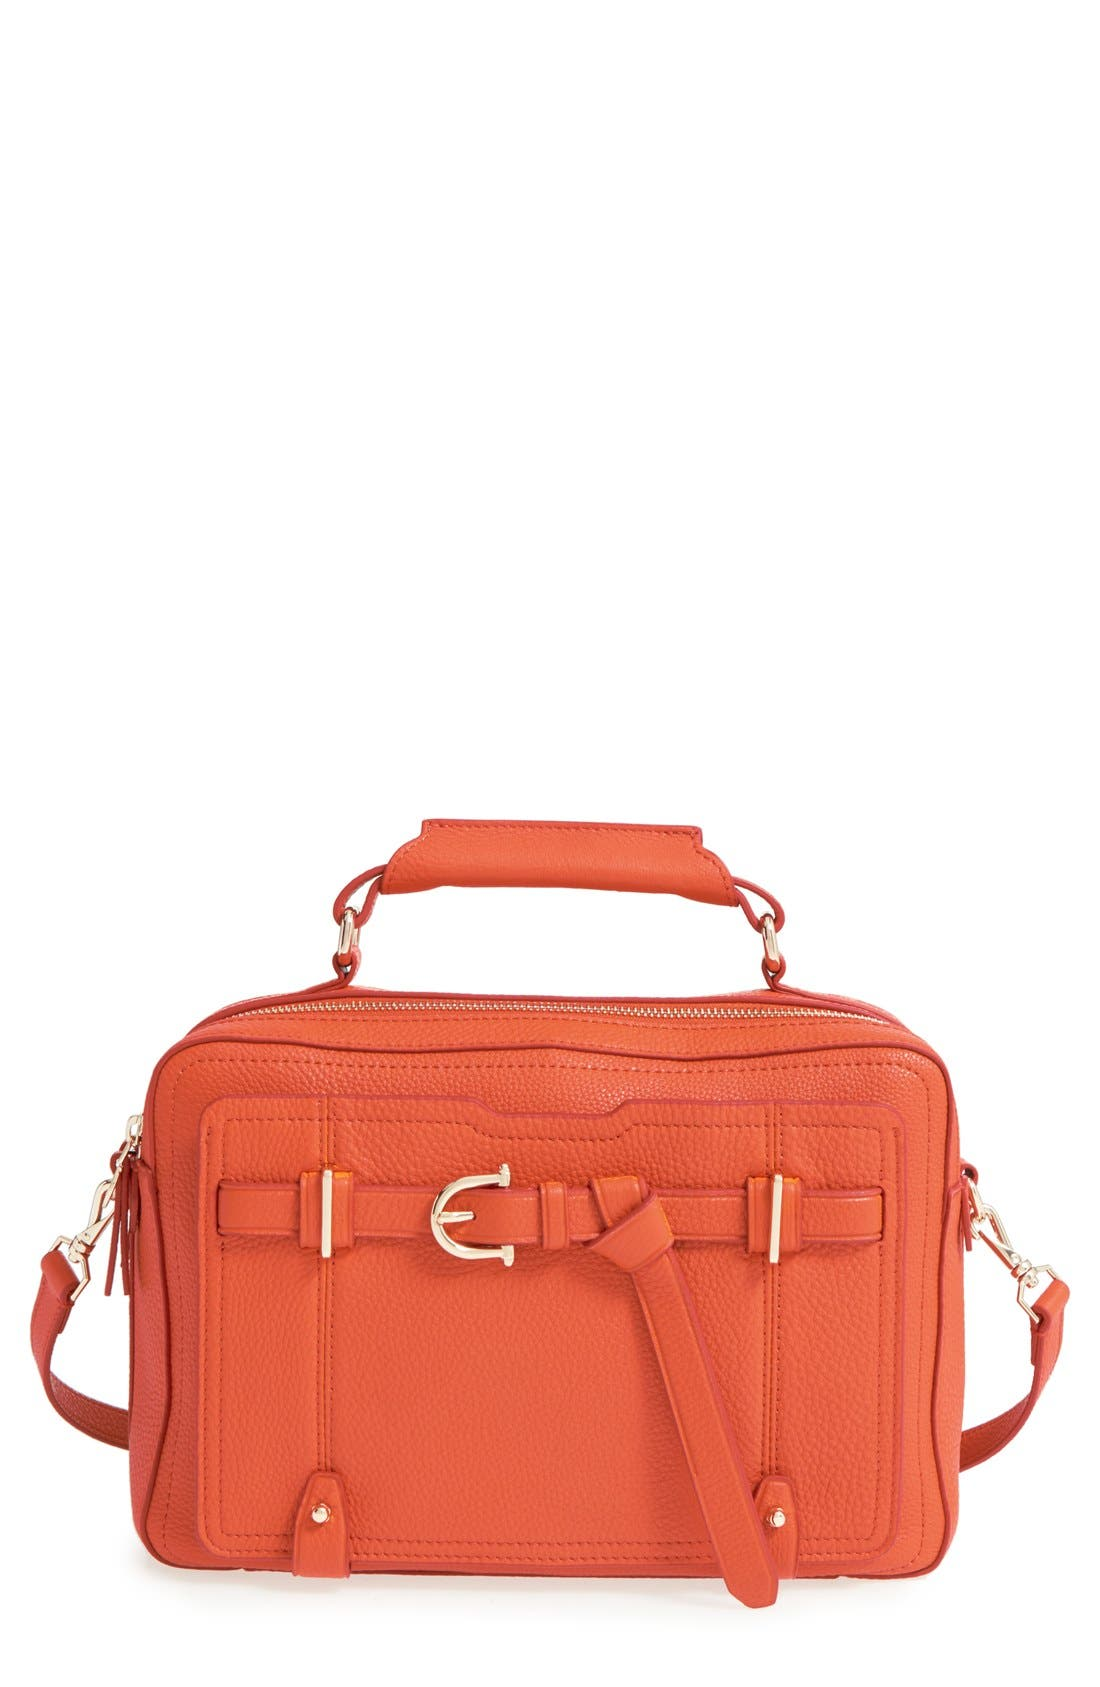 Main Image - Etienne Aigner 'Filly Stag' Satchel